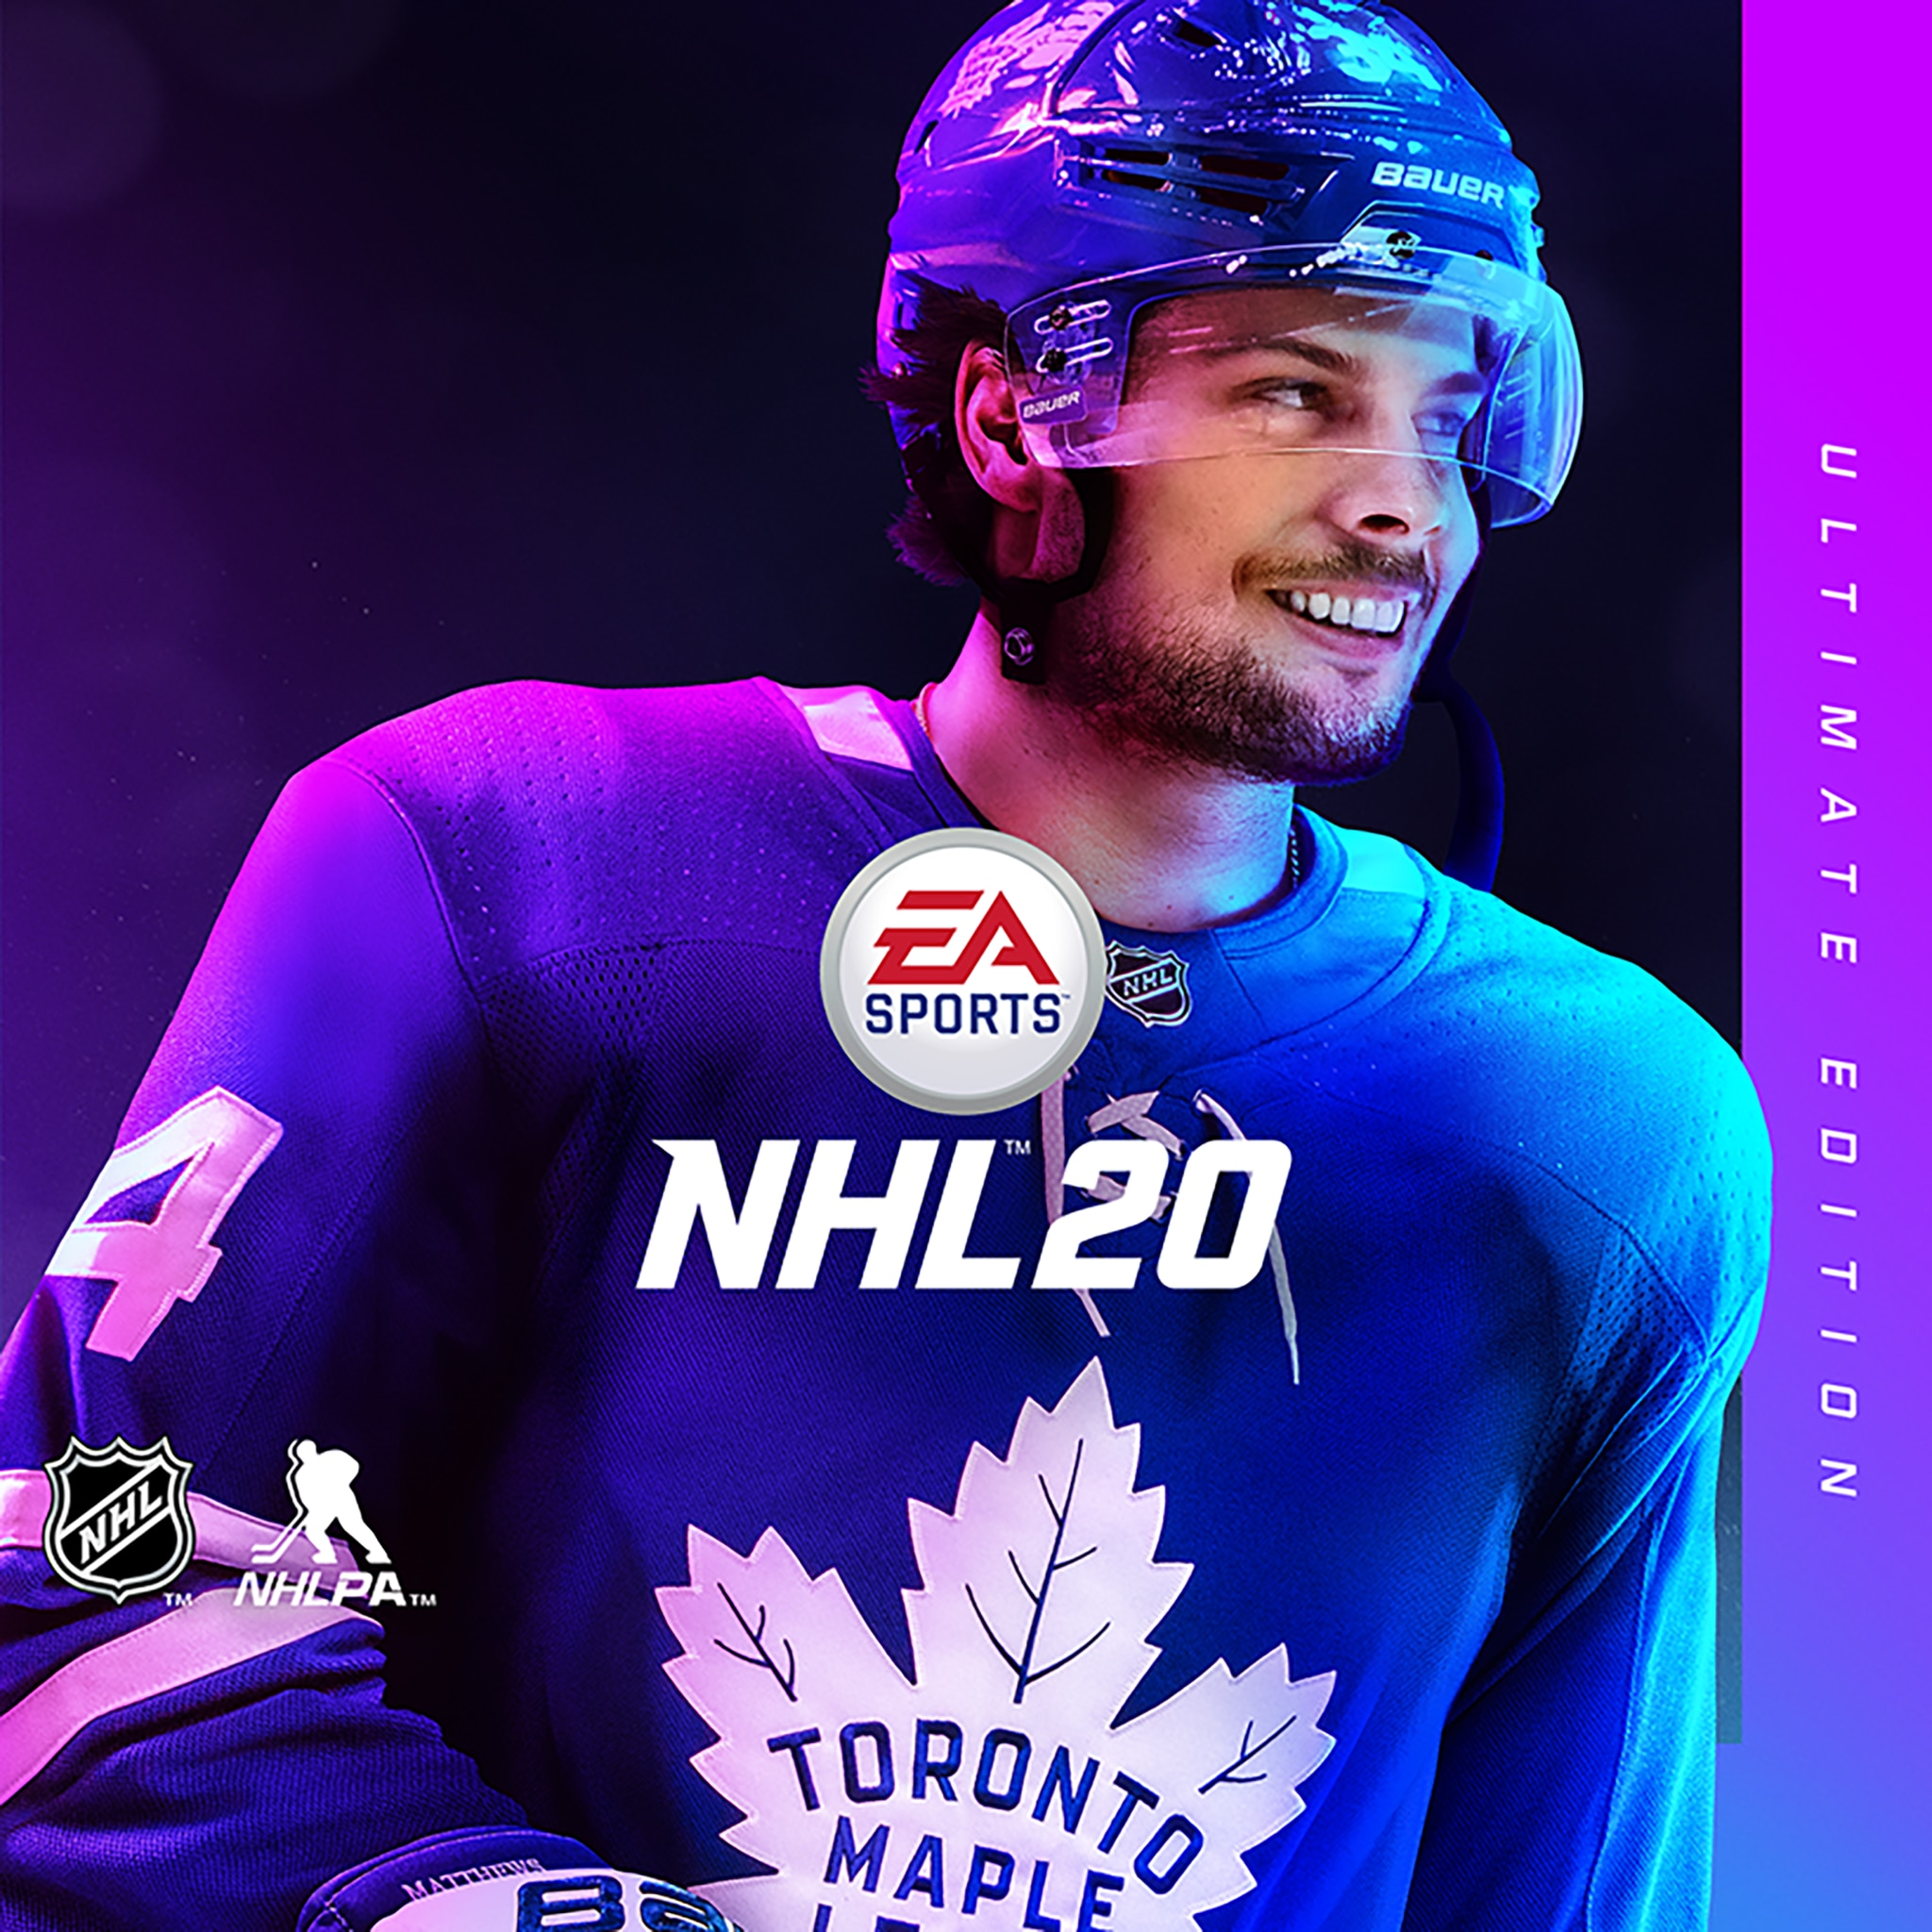 NHL™ 20 Ultimate Edition